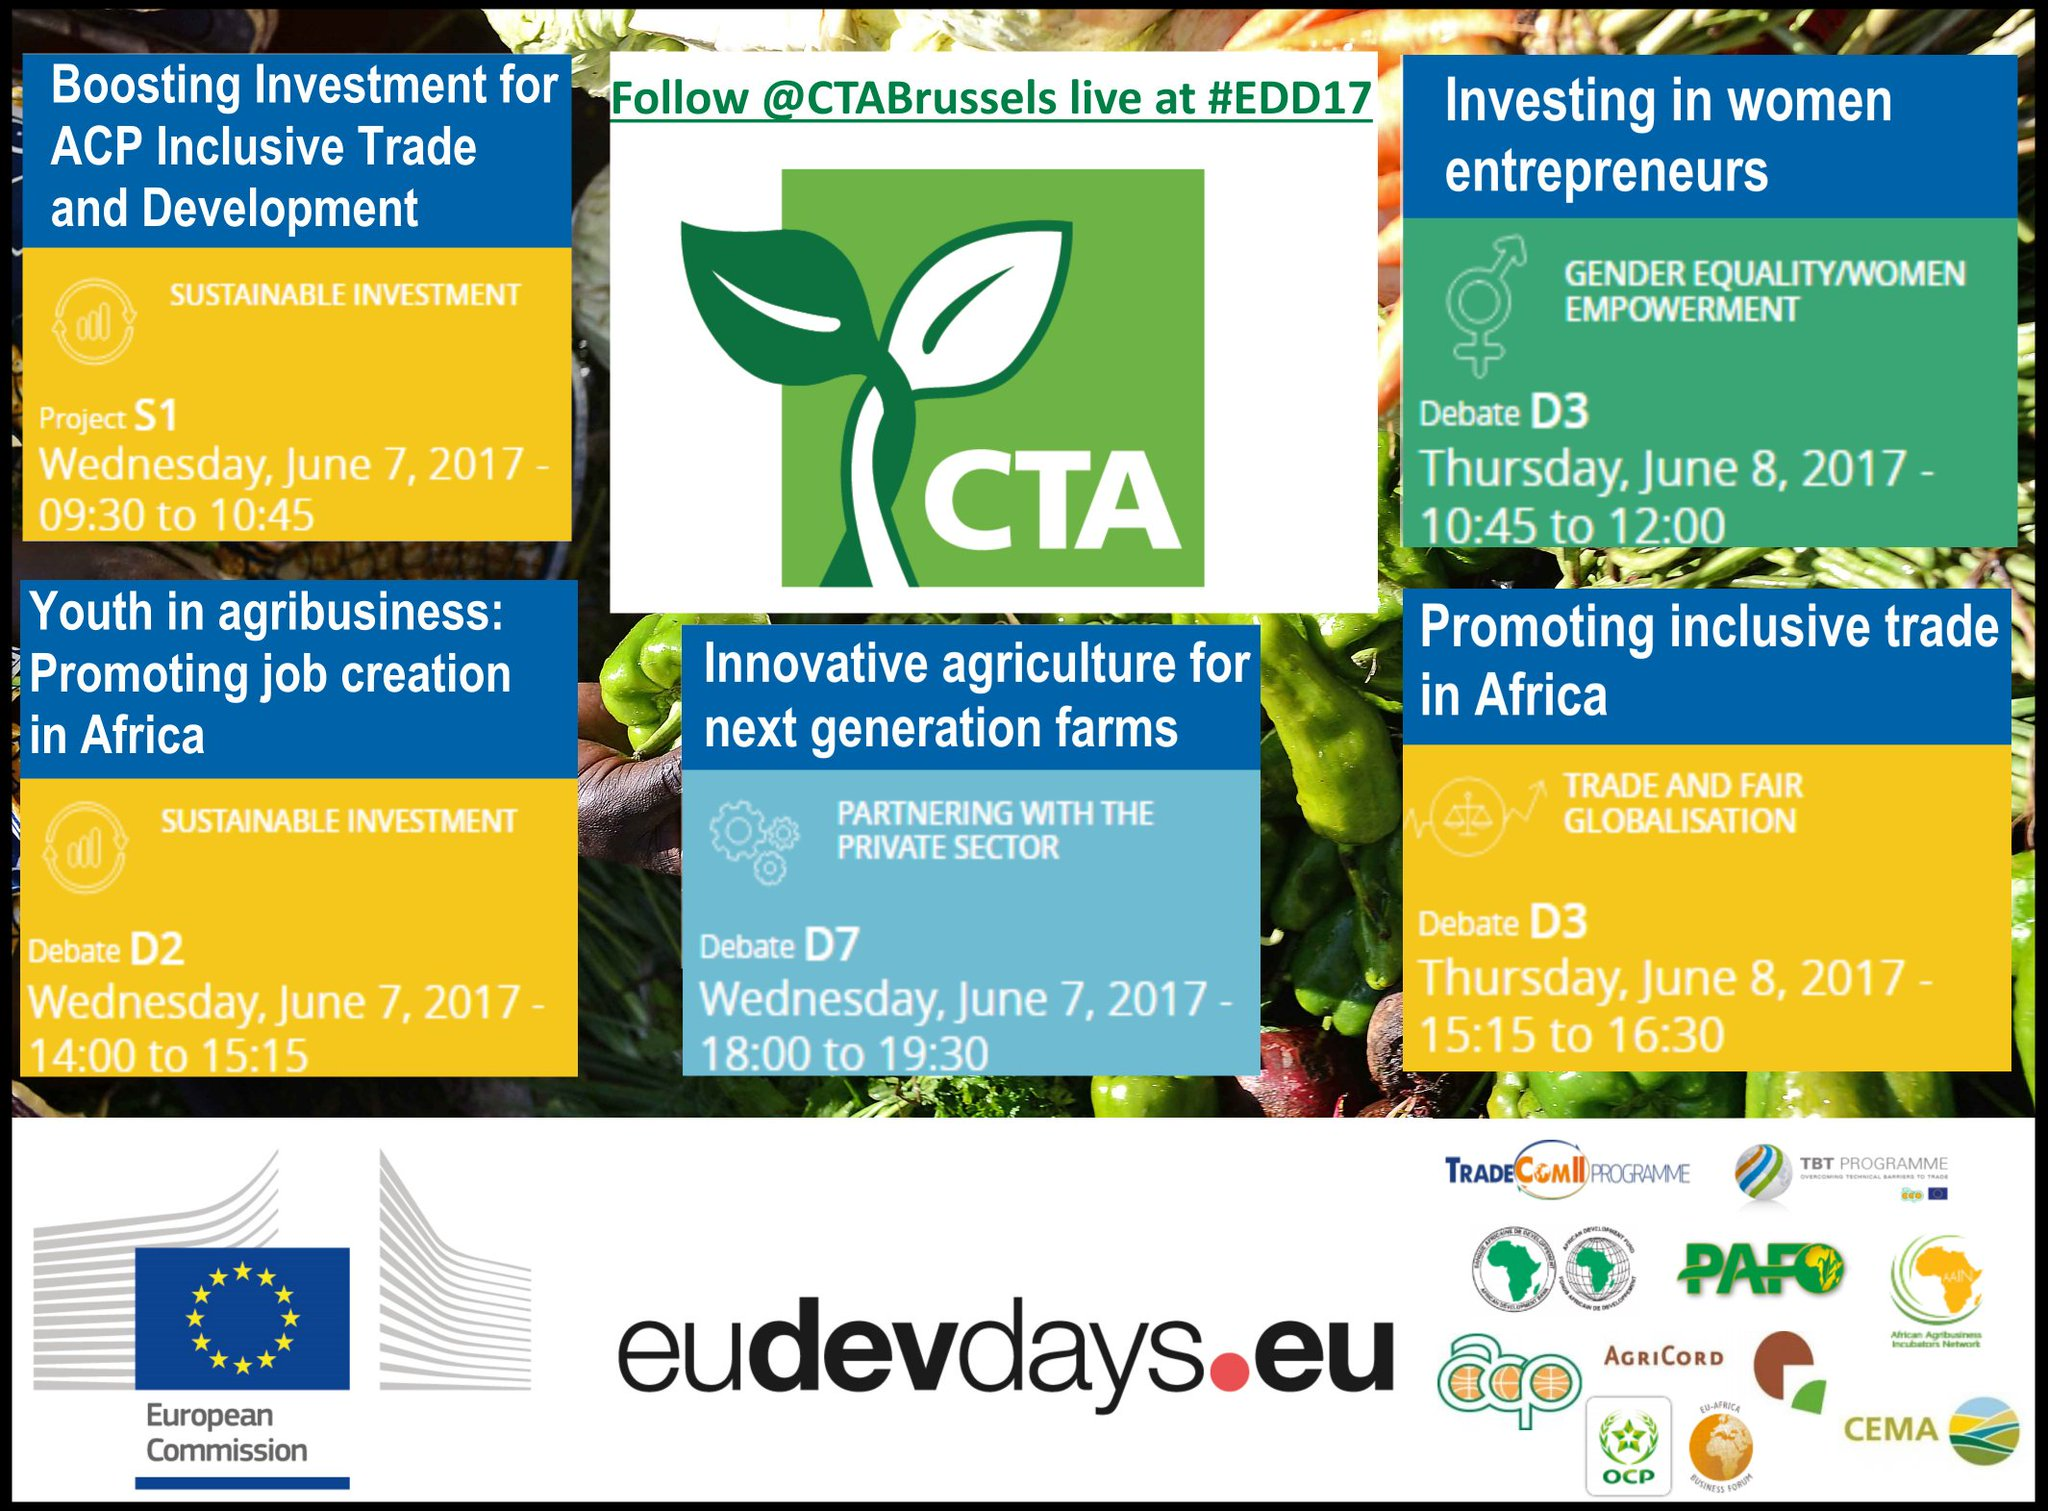 Follow us live @ #EDD17! We'll cover 5 unmissable debates on #Agribusiness w. #Youth, #Women & #Trade experts. Info: https://t.co/7S3ZA6WfkM https://t.co/Cu0swdfHod